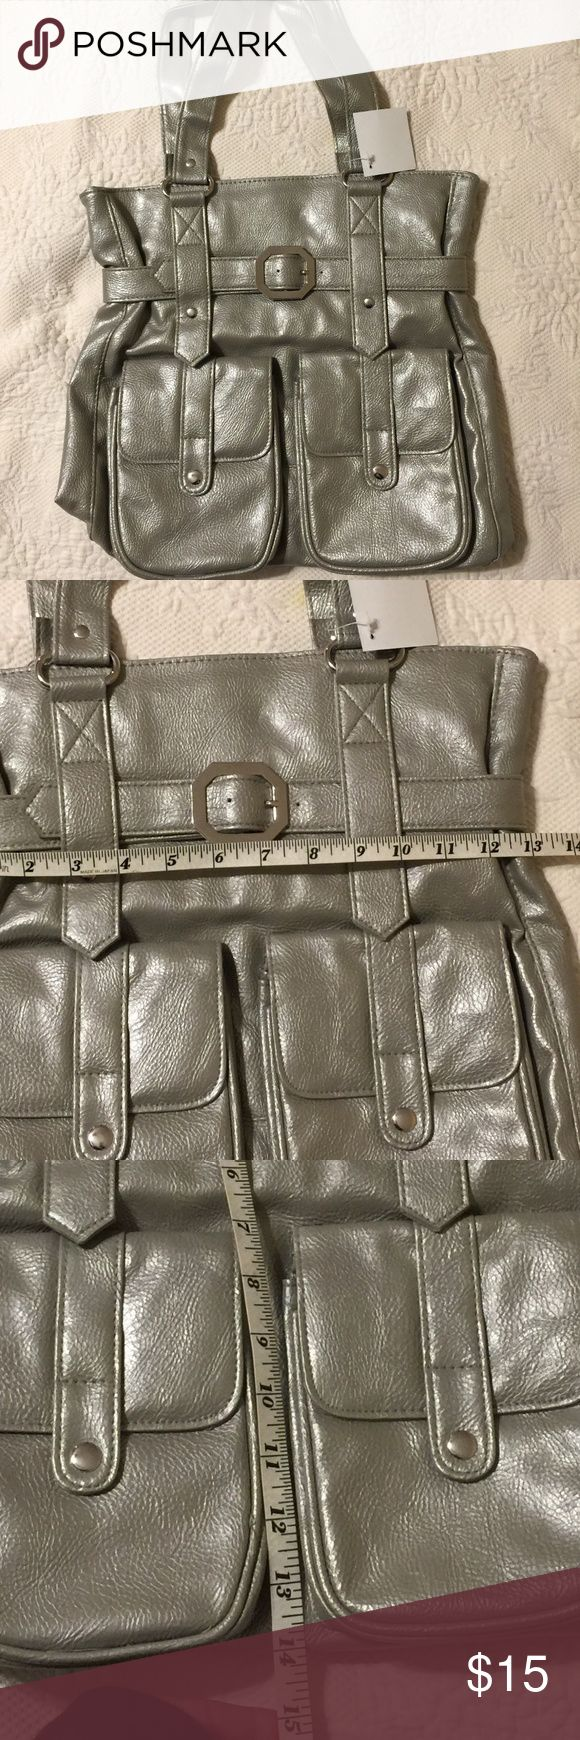 "Silver Tote Bag Silver Tote Bag- Heavy Duty Tote that you can throw anything in! New, Never used.  Measures Width 13"" and Height 14"". NWT Bags Totes"